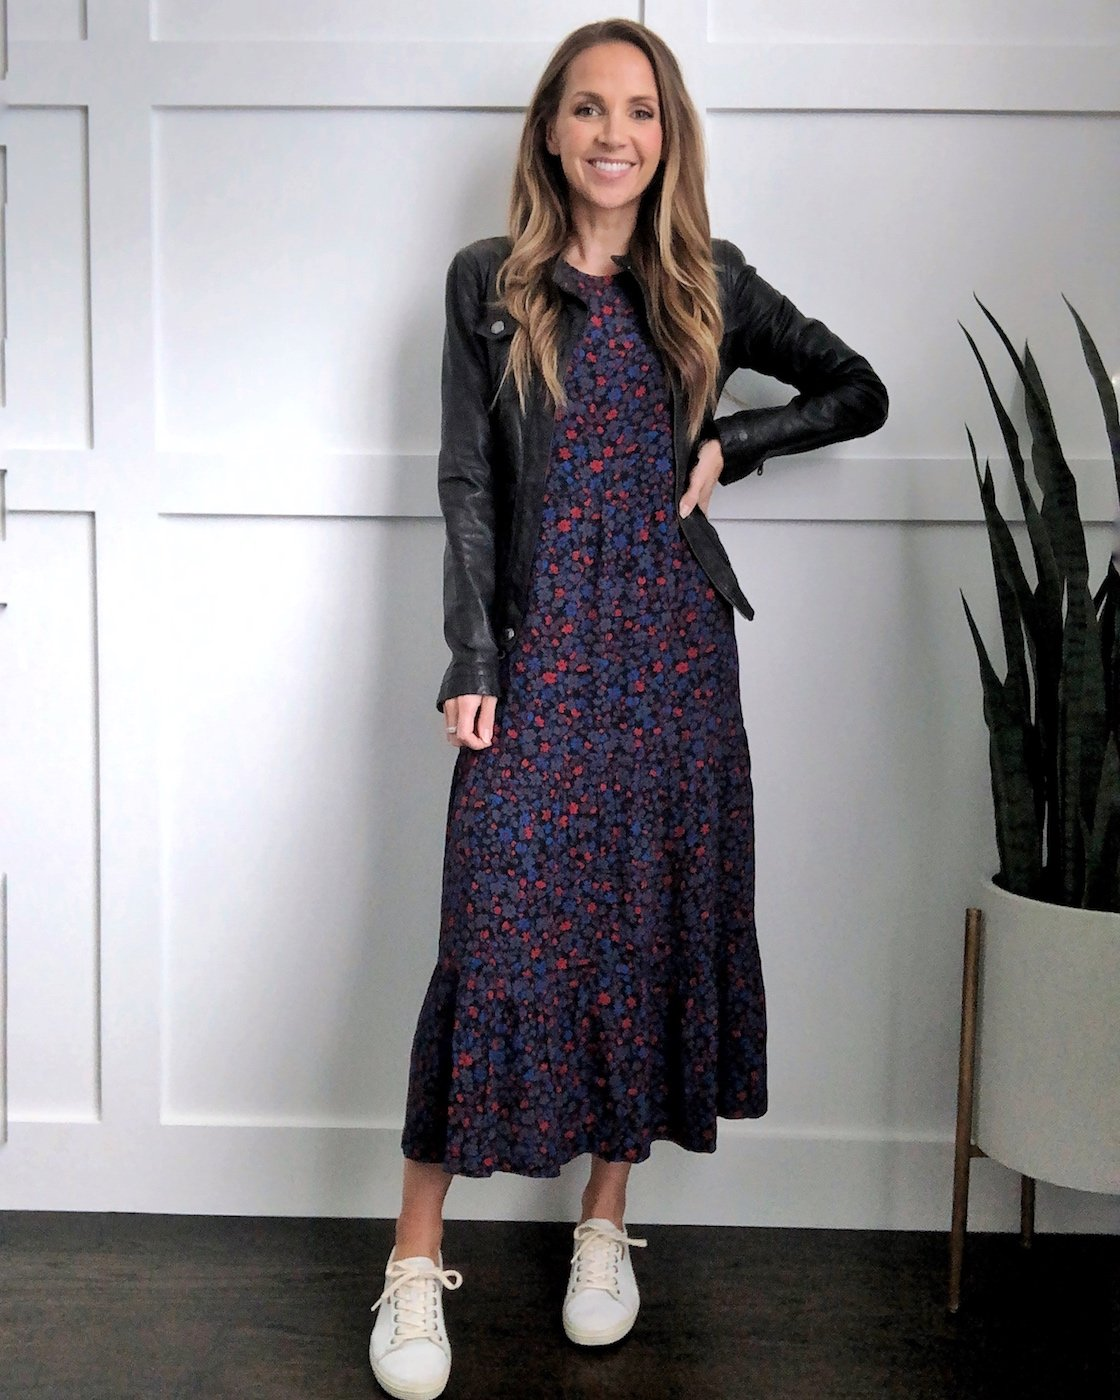 How to wear a midi dress with a leather jacket and sneakers